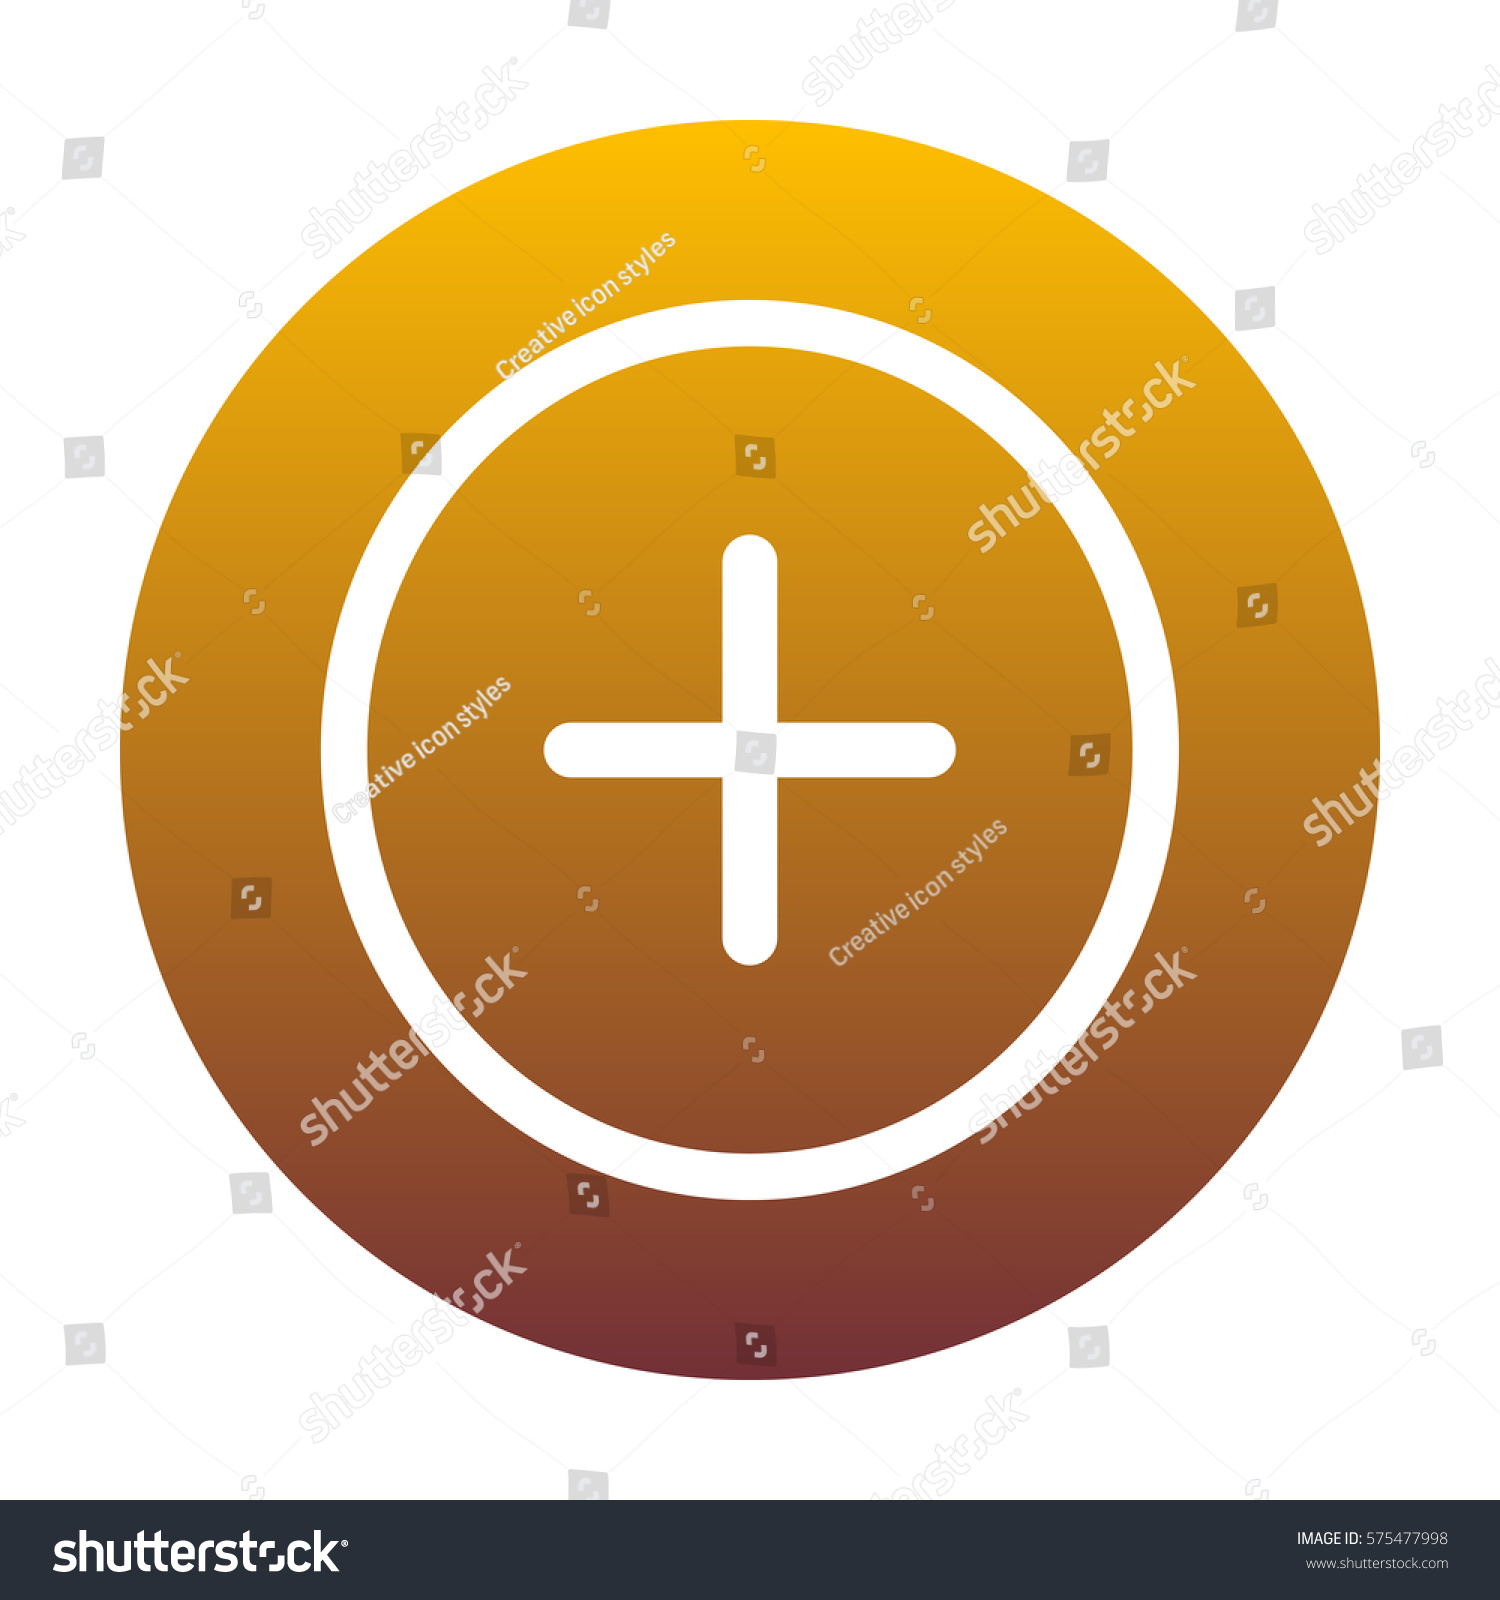 Positive symbol plus sign white icon stock vector 575477998 positive symbol plus sign white icon in circle with golden gradient as background isolated biocorpaavc Choice Image